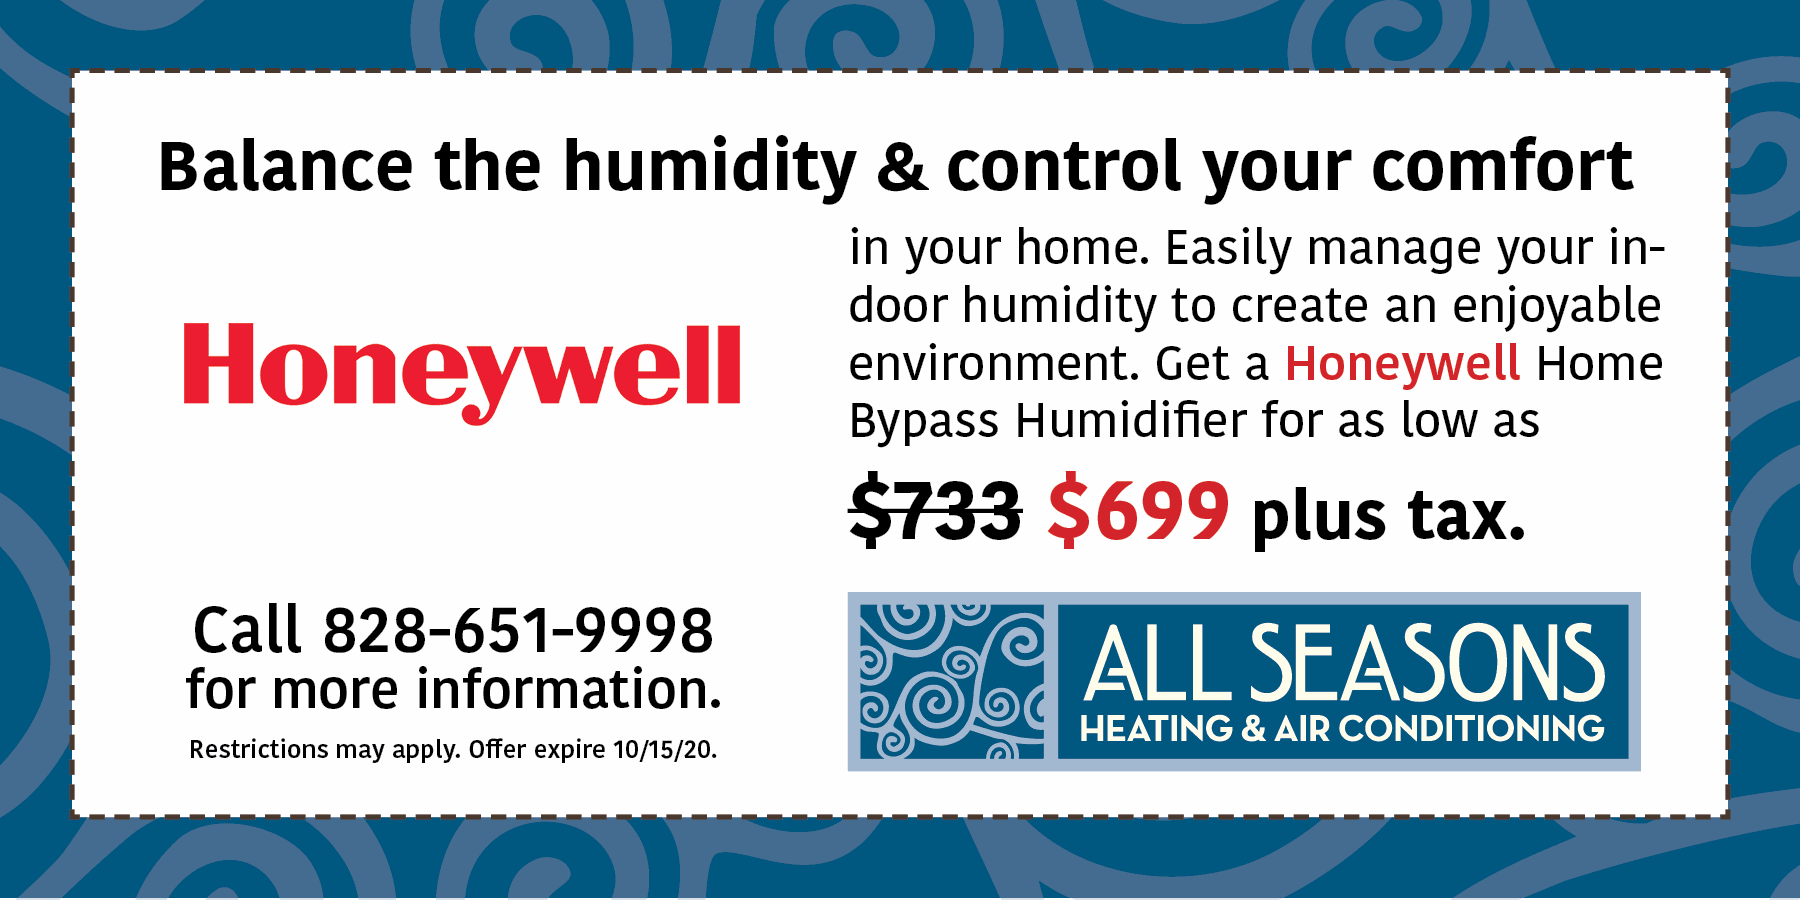 Honeywell Home Bypass Humidifier for as low as $699 plus tax.